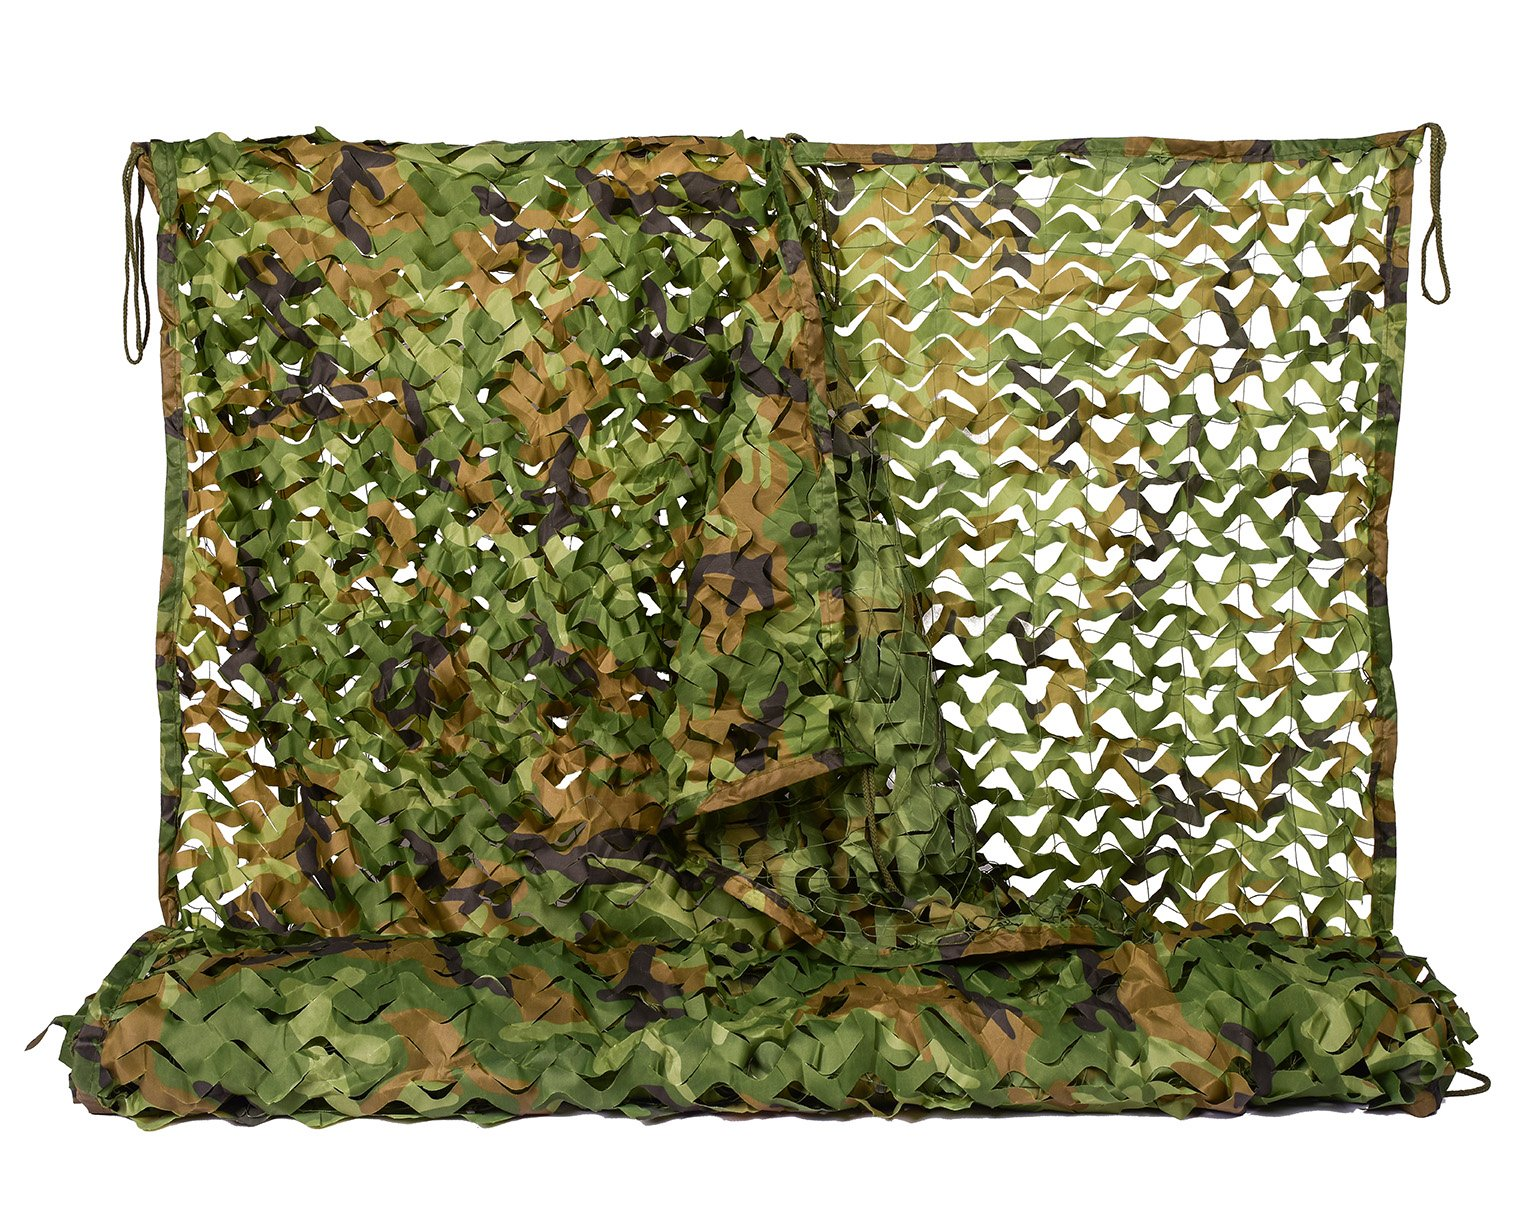 NINAT Camo Netting 3.25x6.5ft Woodland Camouflage Net for Camping Military Hunting Shooting Sunscreen Nets